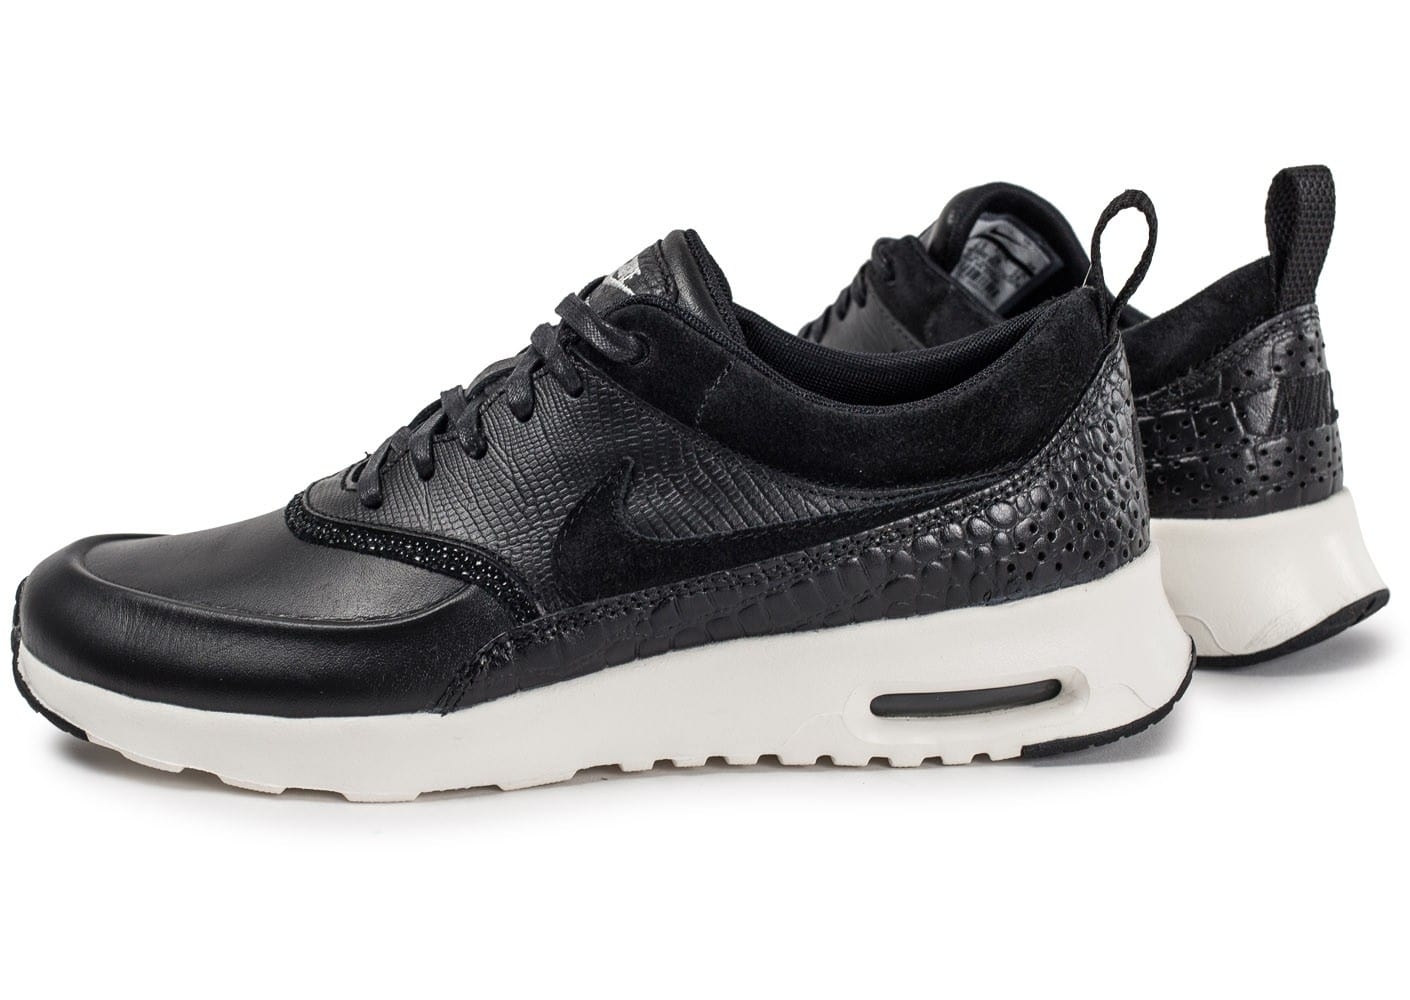 Nike Air Max Thea LX noire Chaussures Baskets femme